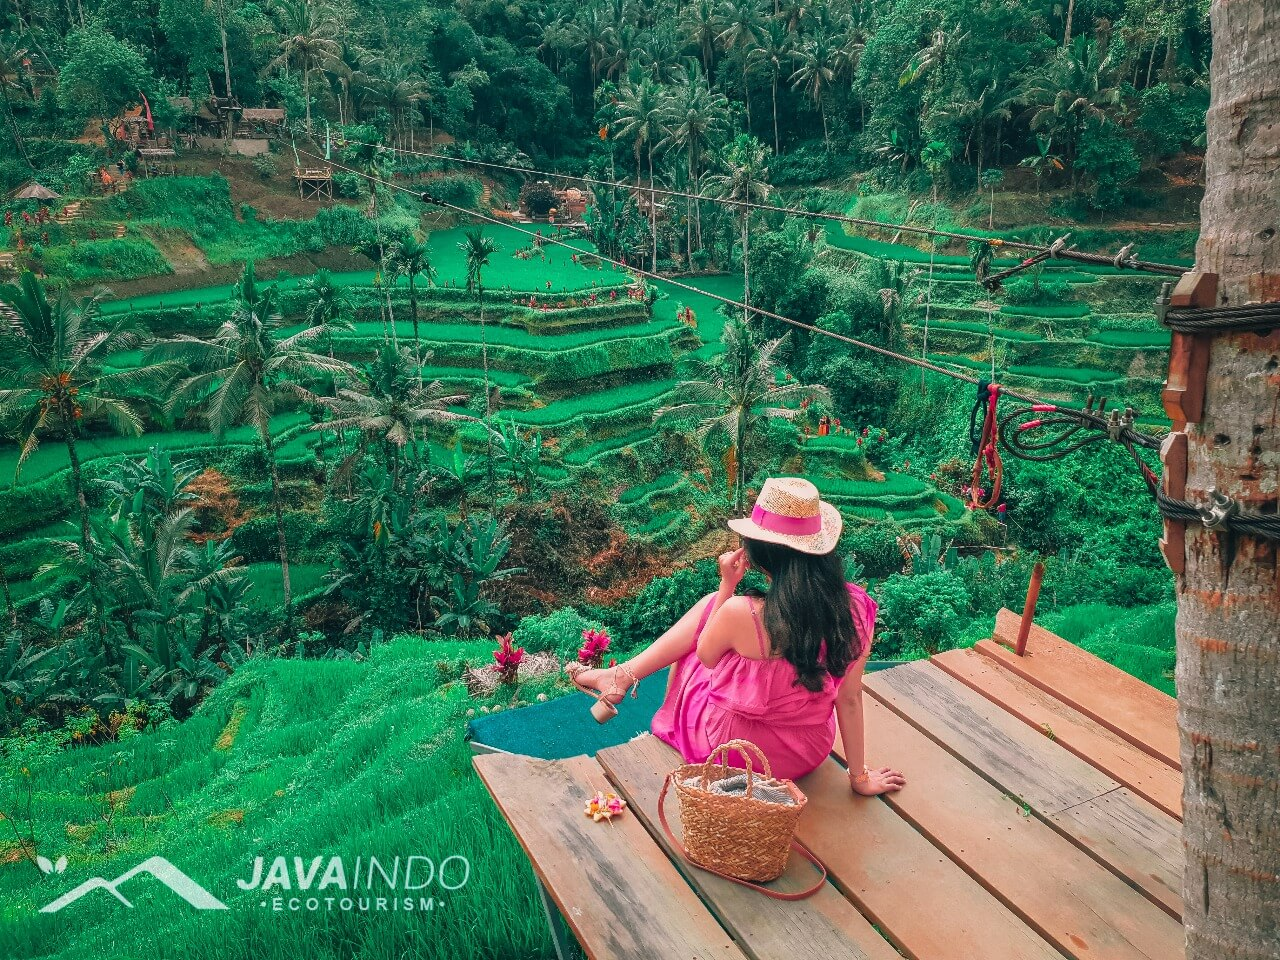 Reliable Tour Operator in Indonesia